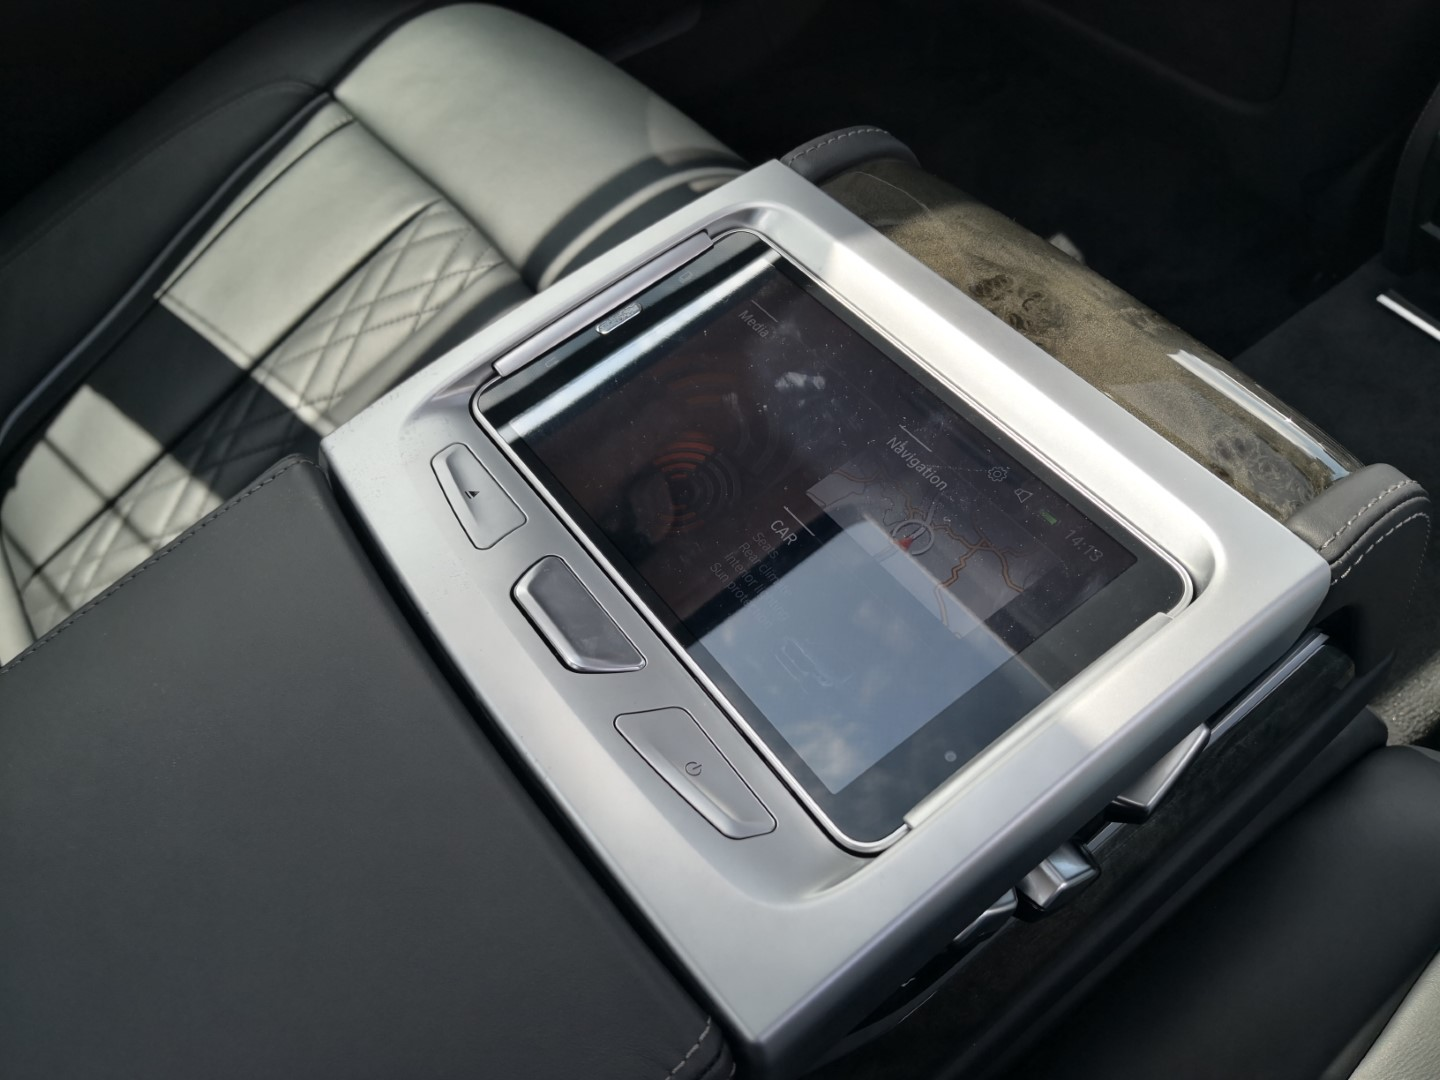 bmw 740le rear seat entertainment system